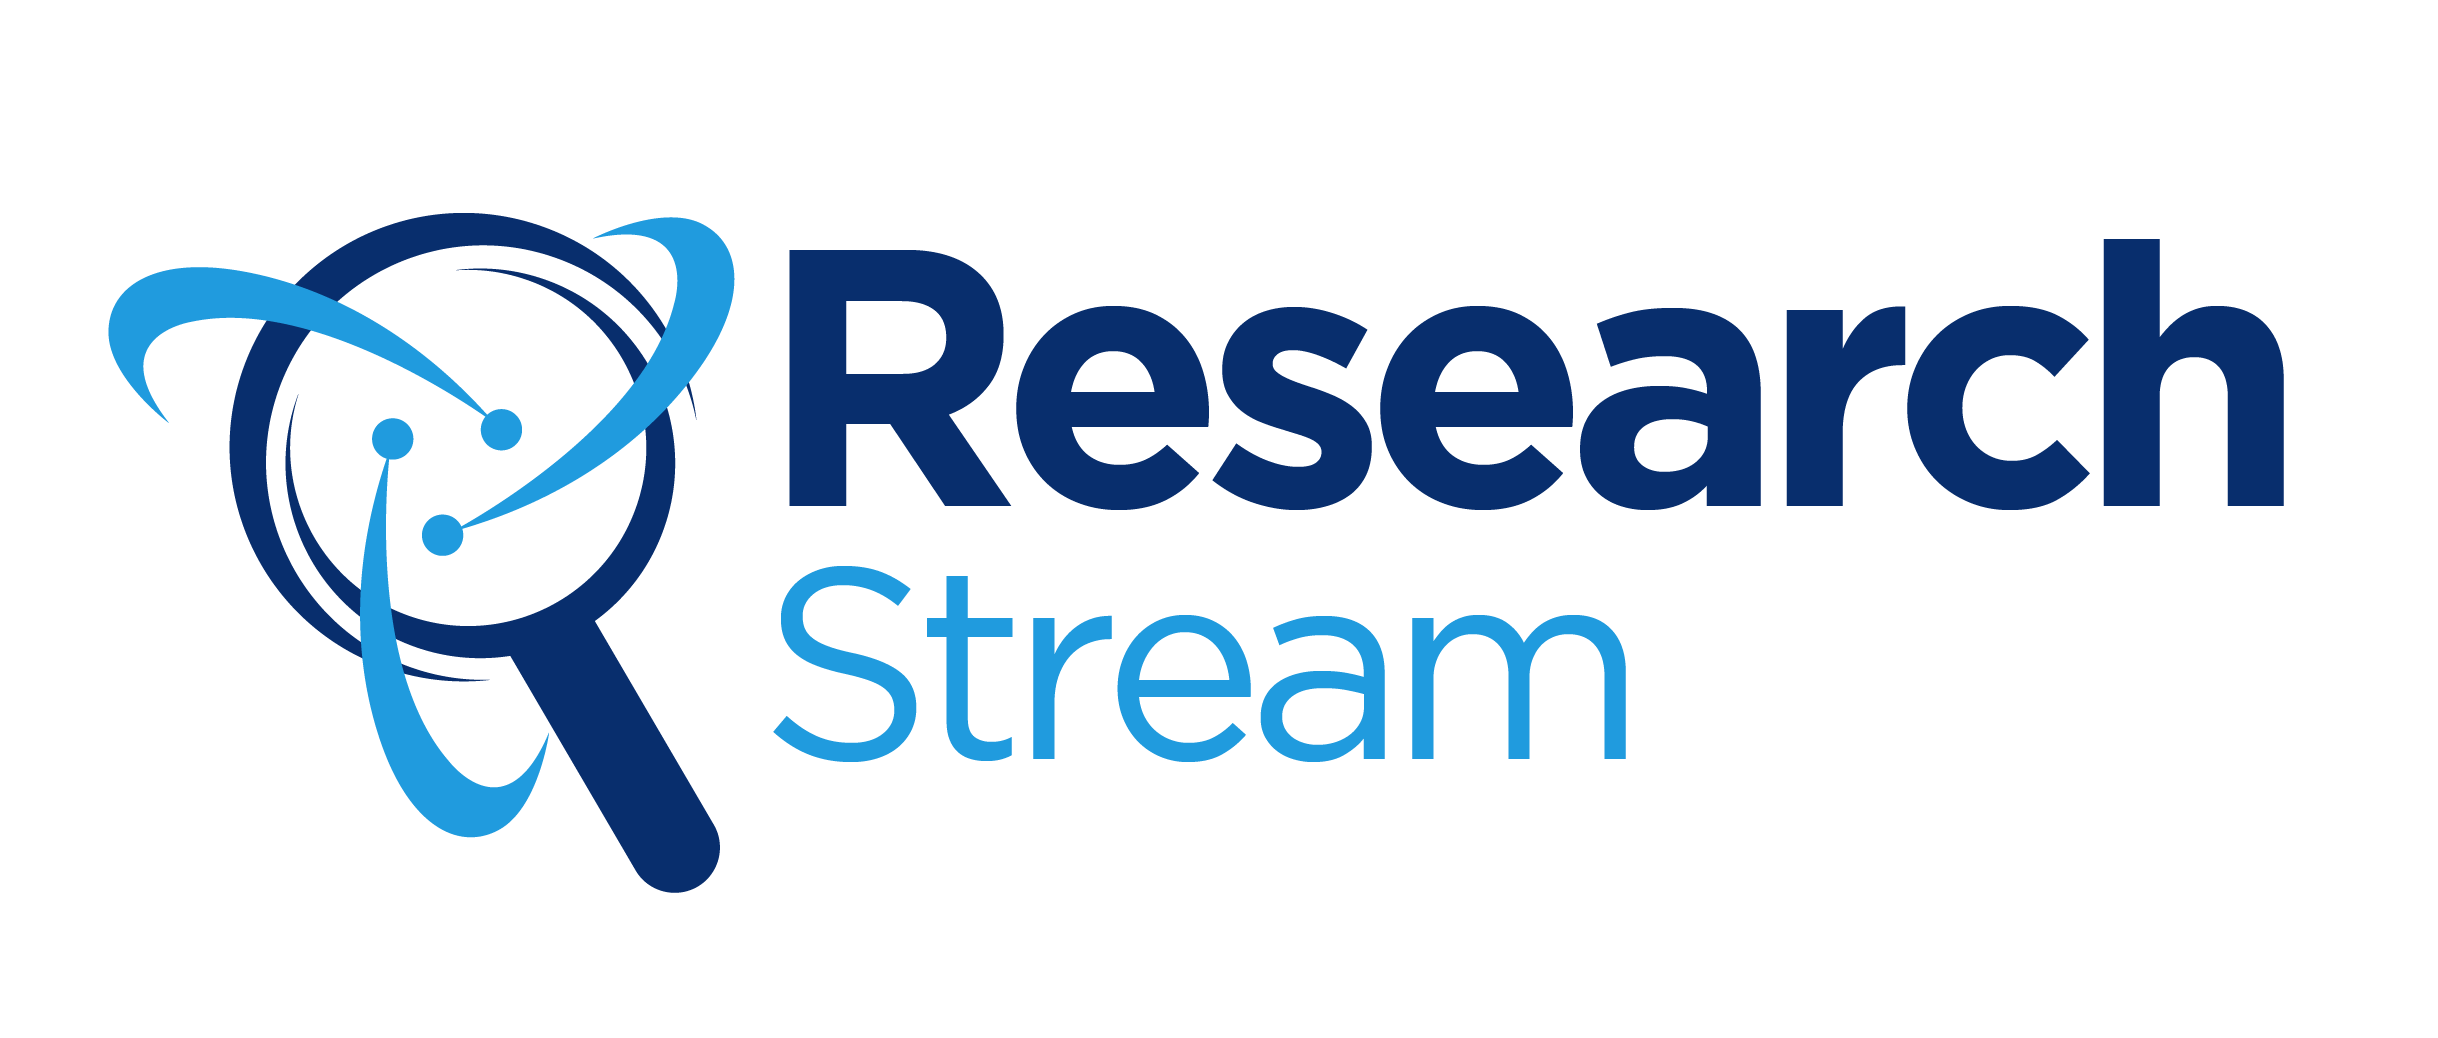 Research Stream main logo with words.